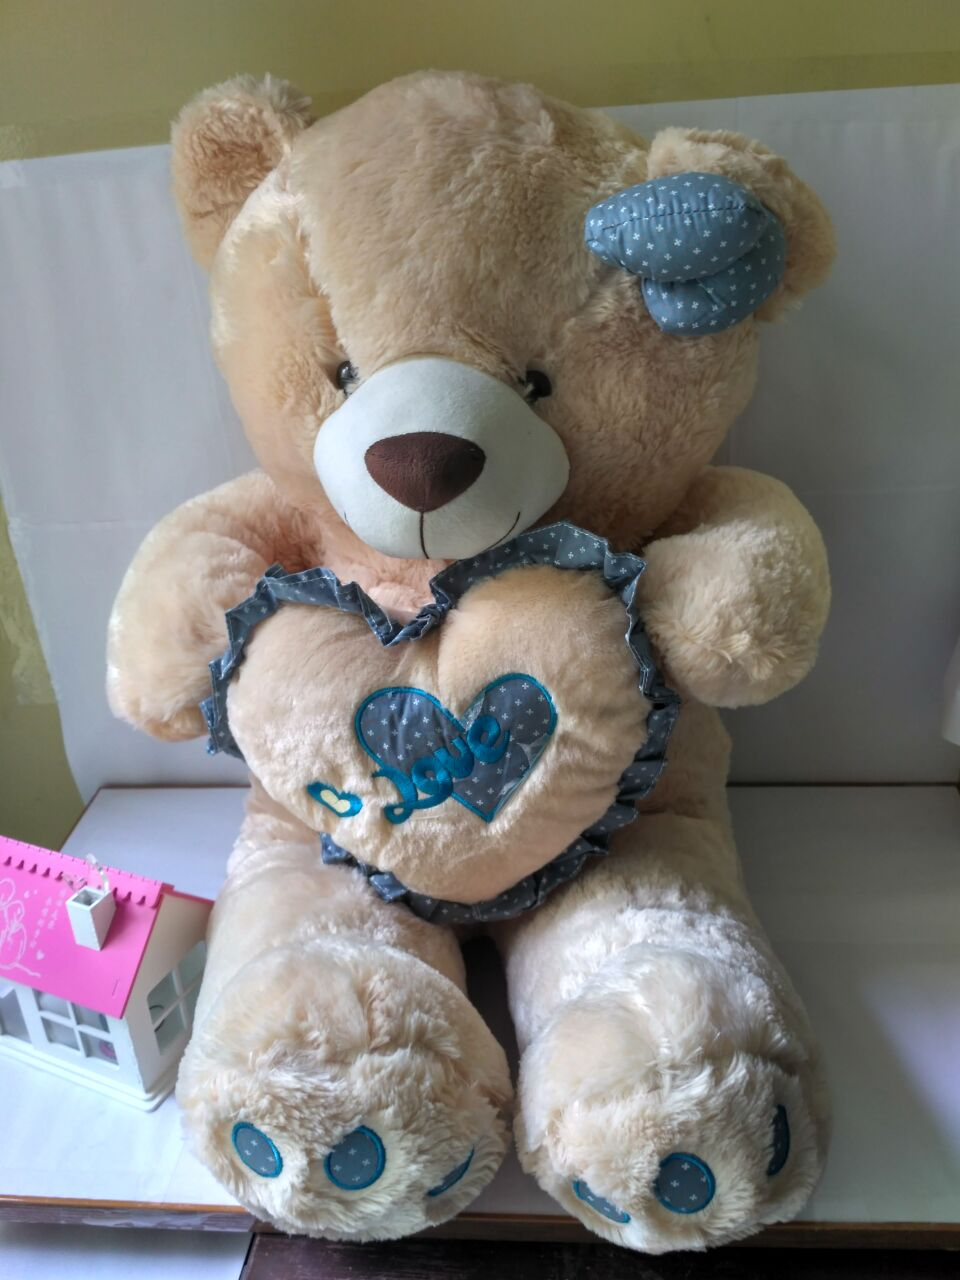 new plush teddy bear toy cute blue heart and bow bear doll gift about 100cm huge lovely plush teddy bear toy with blue heart and bow creative bear doll gift about 120cm